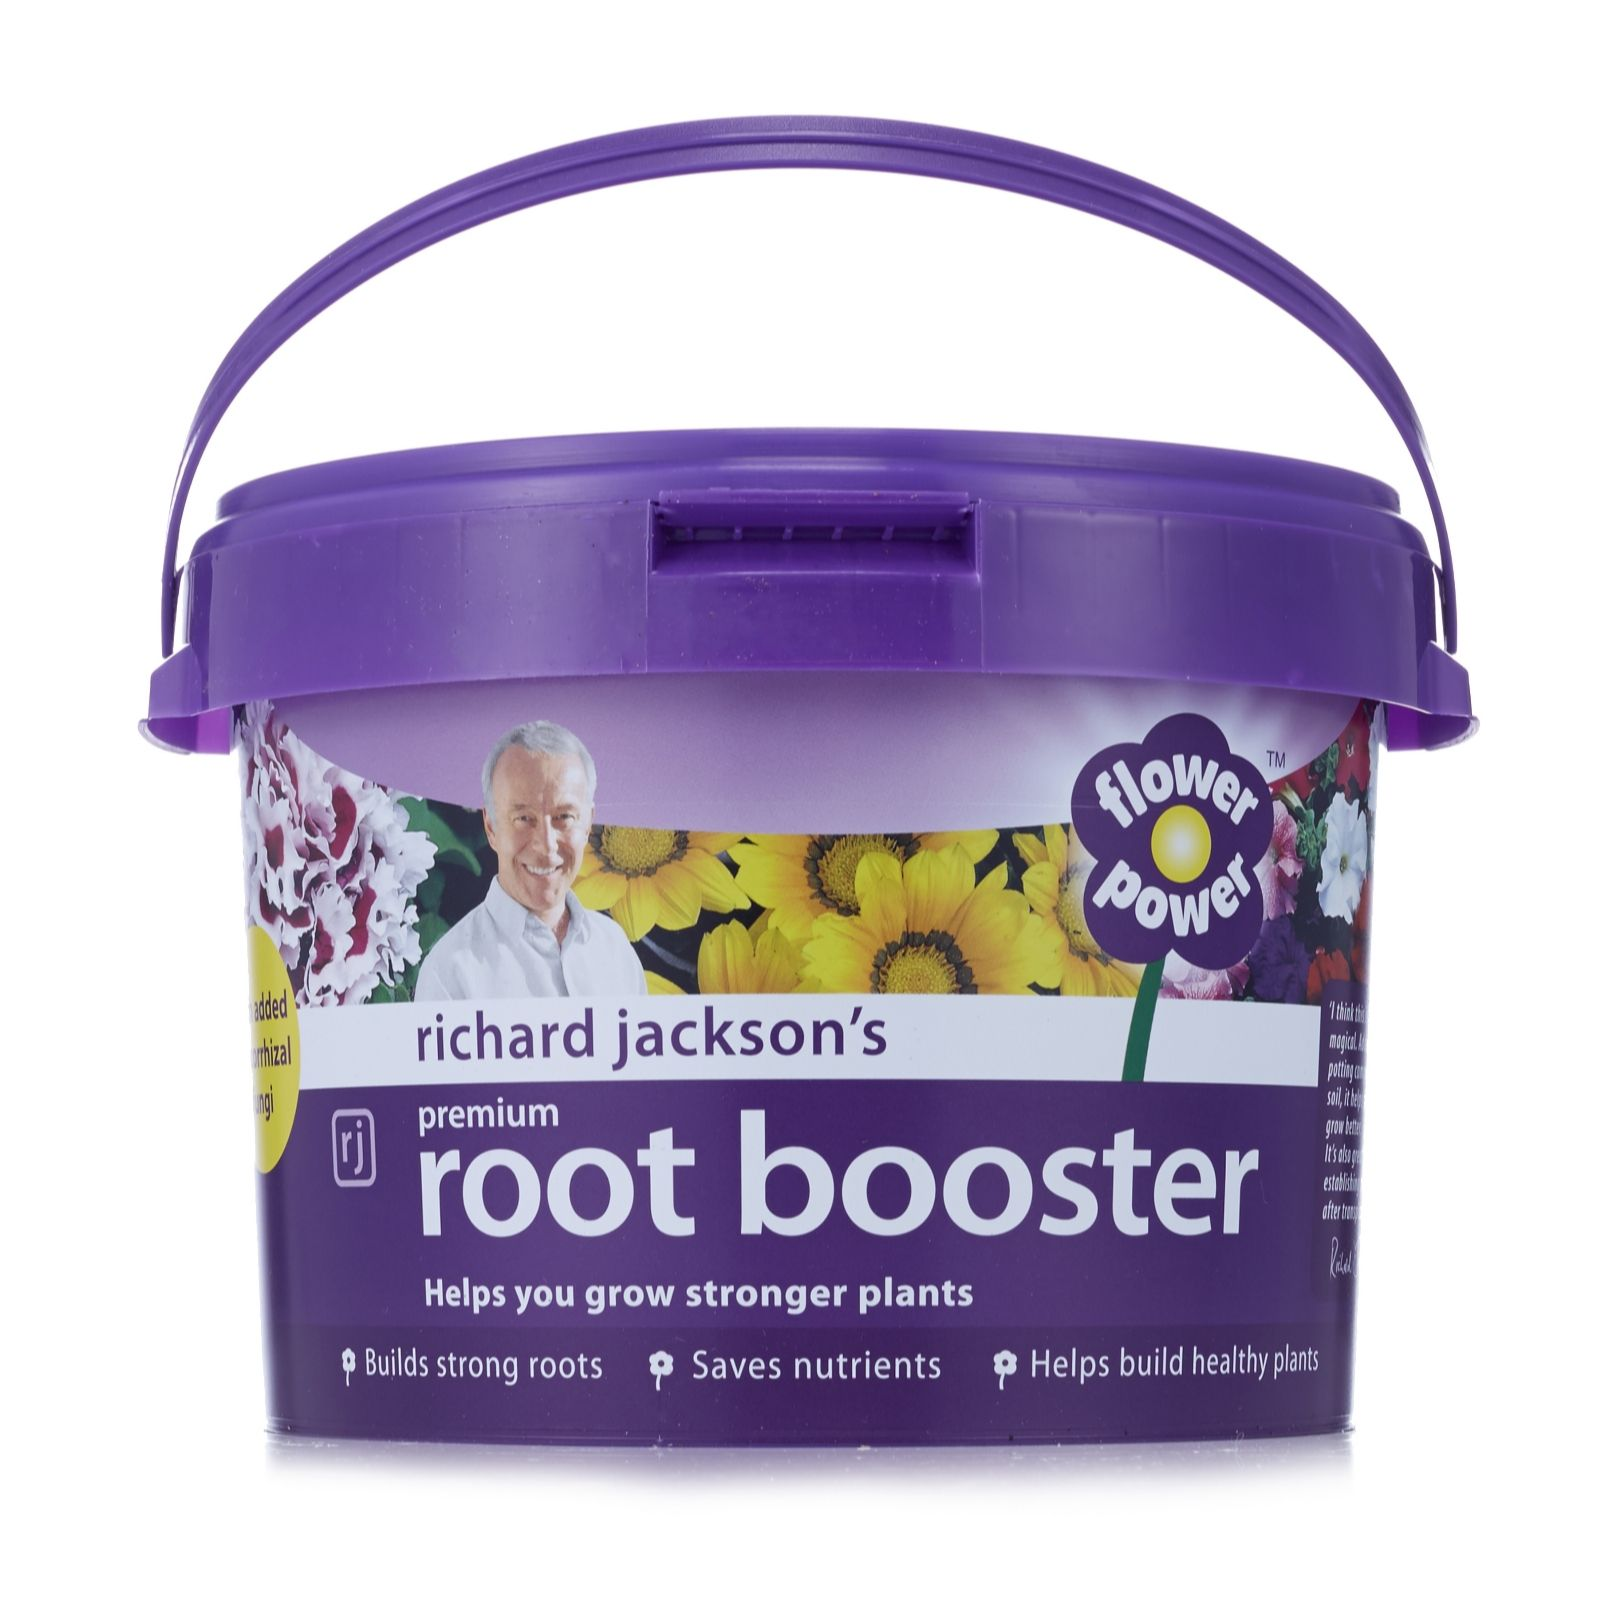 Richard Jacksonu0027s Flower Power 1.8kg Root Booster Tub   513123